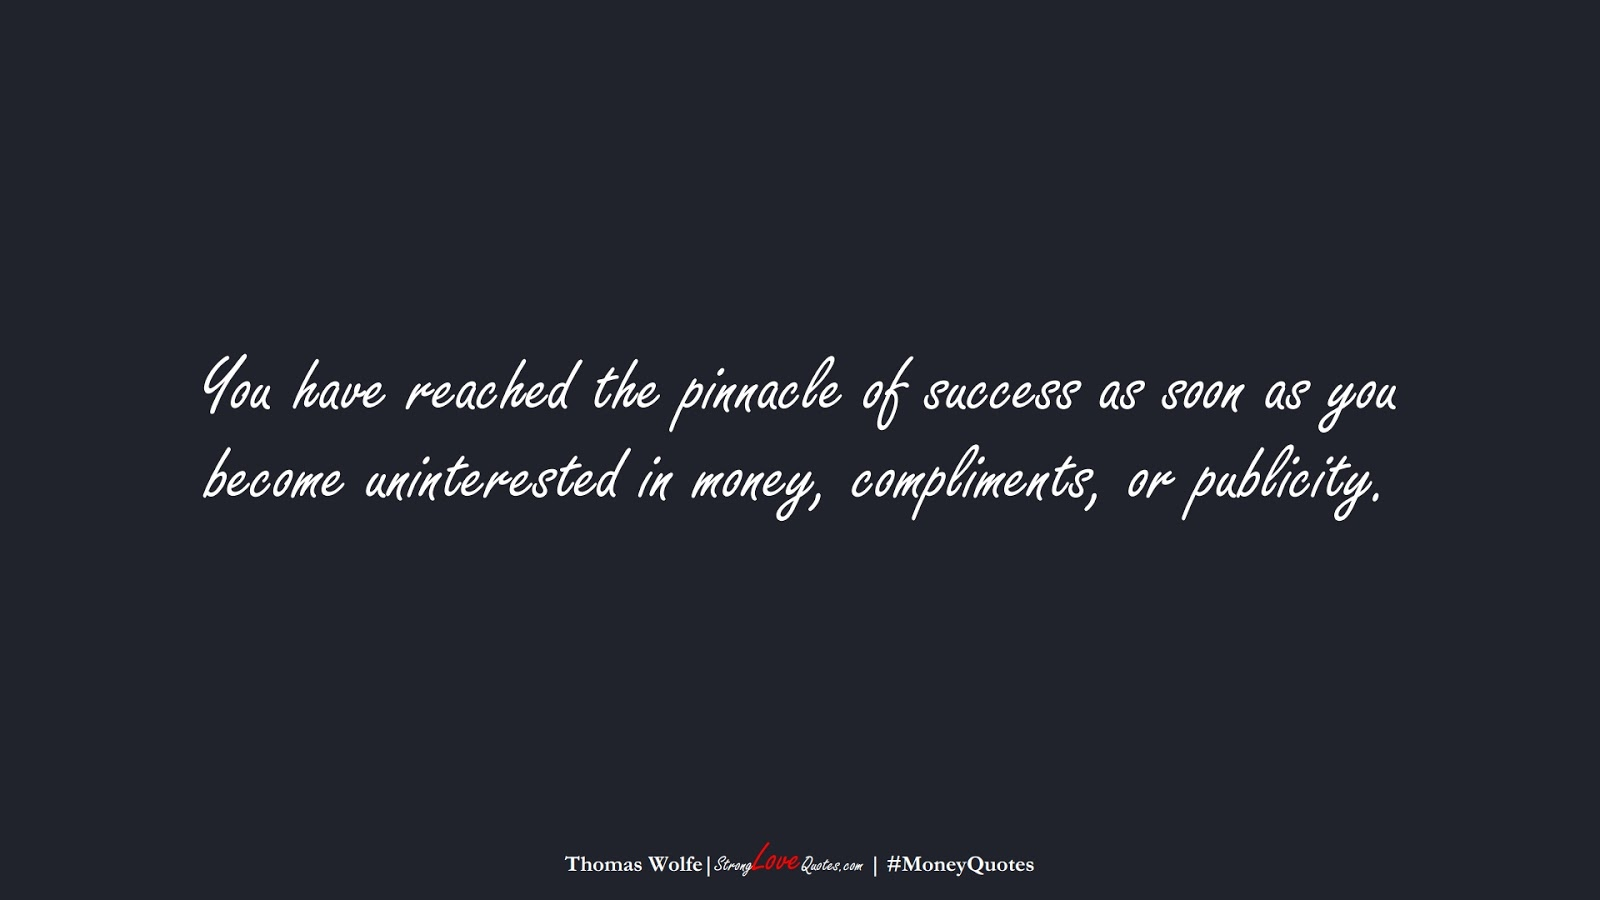 You have reached the pinnacle of success as soon as you become uninterested in money, compliments, or publicity. (Thomas Wolfe);  #MoneyQuotes